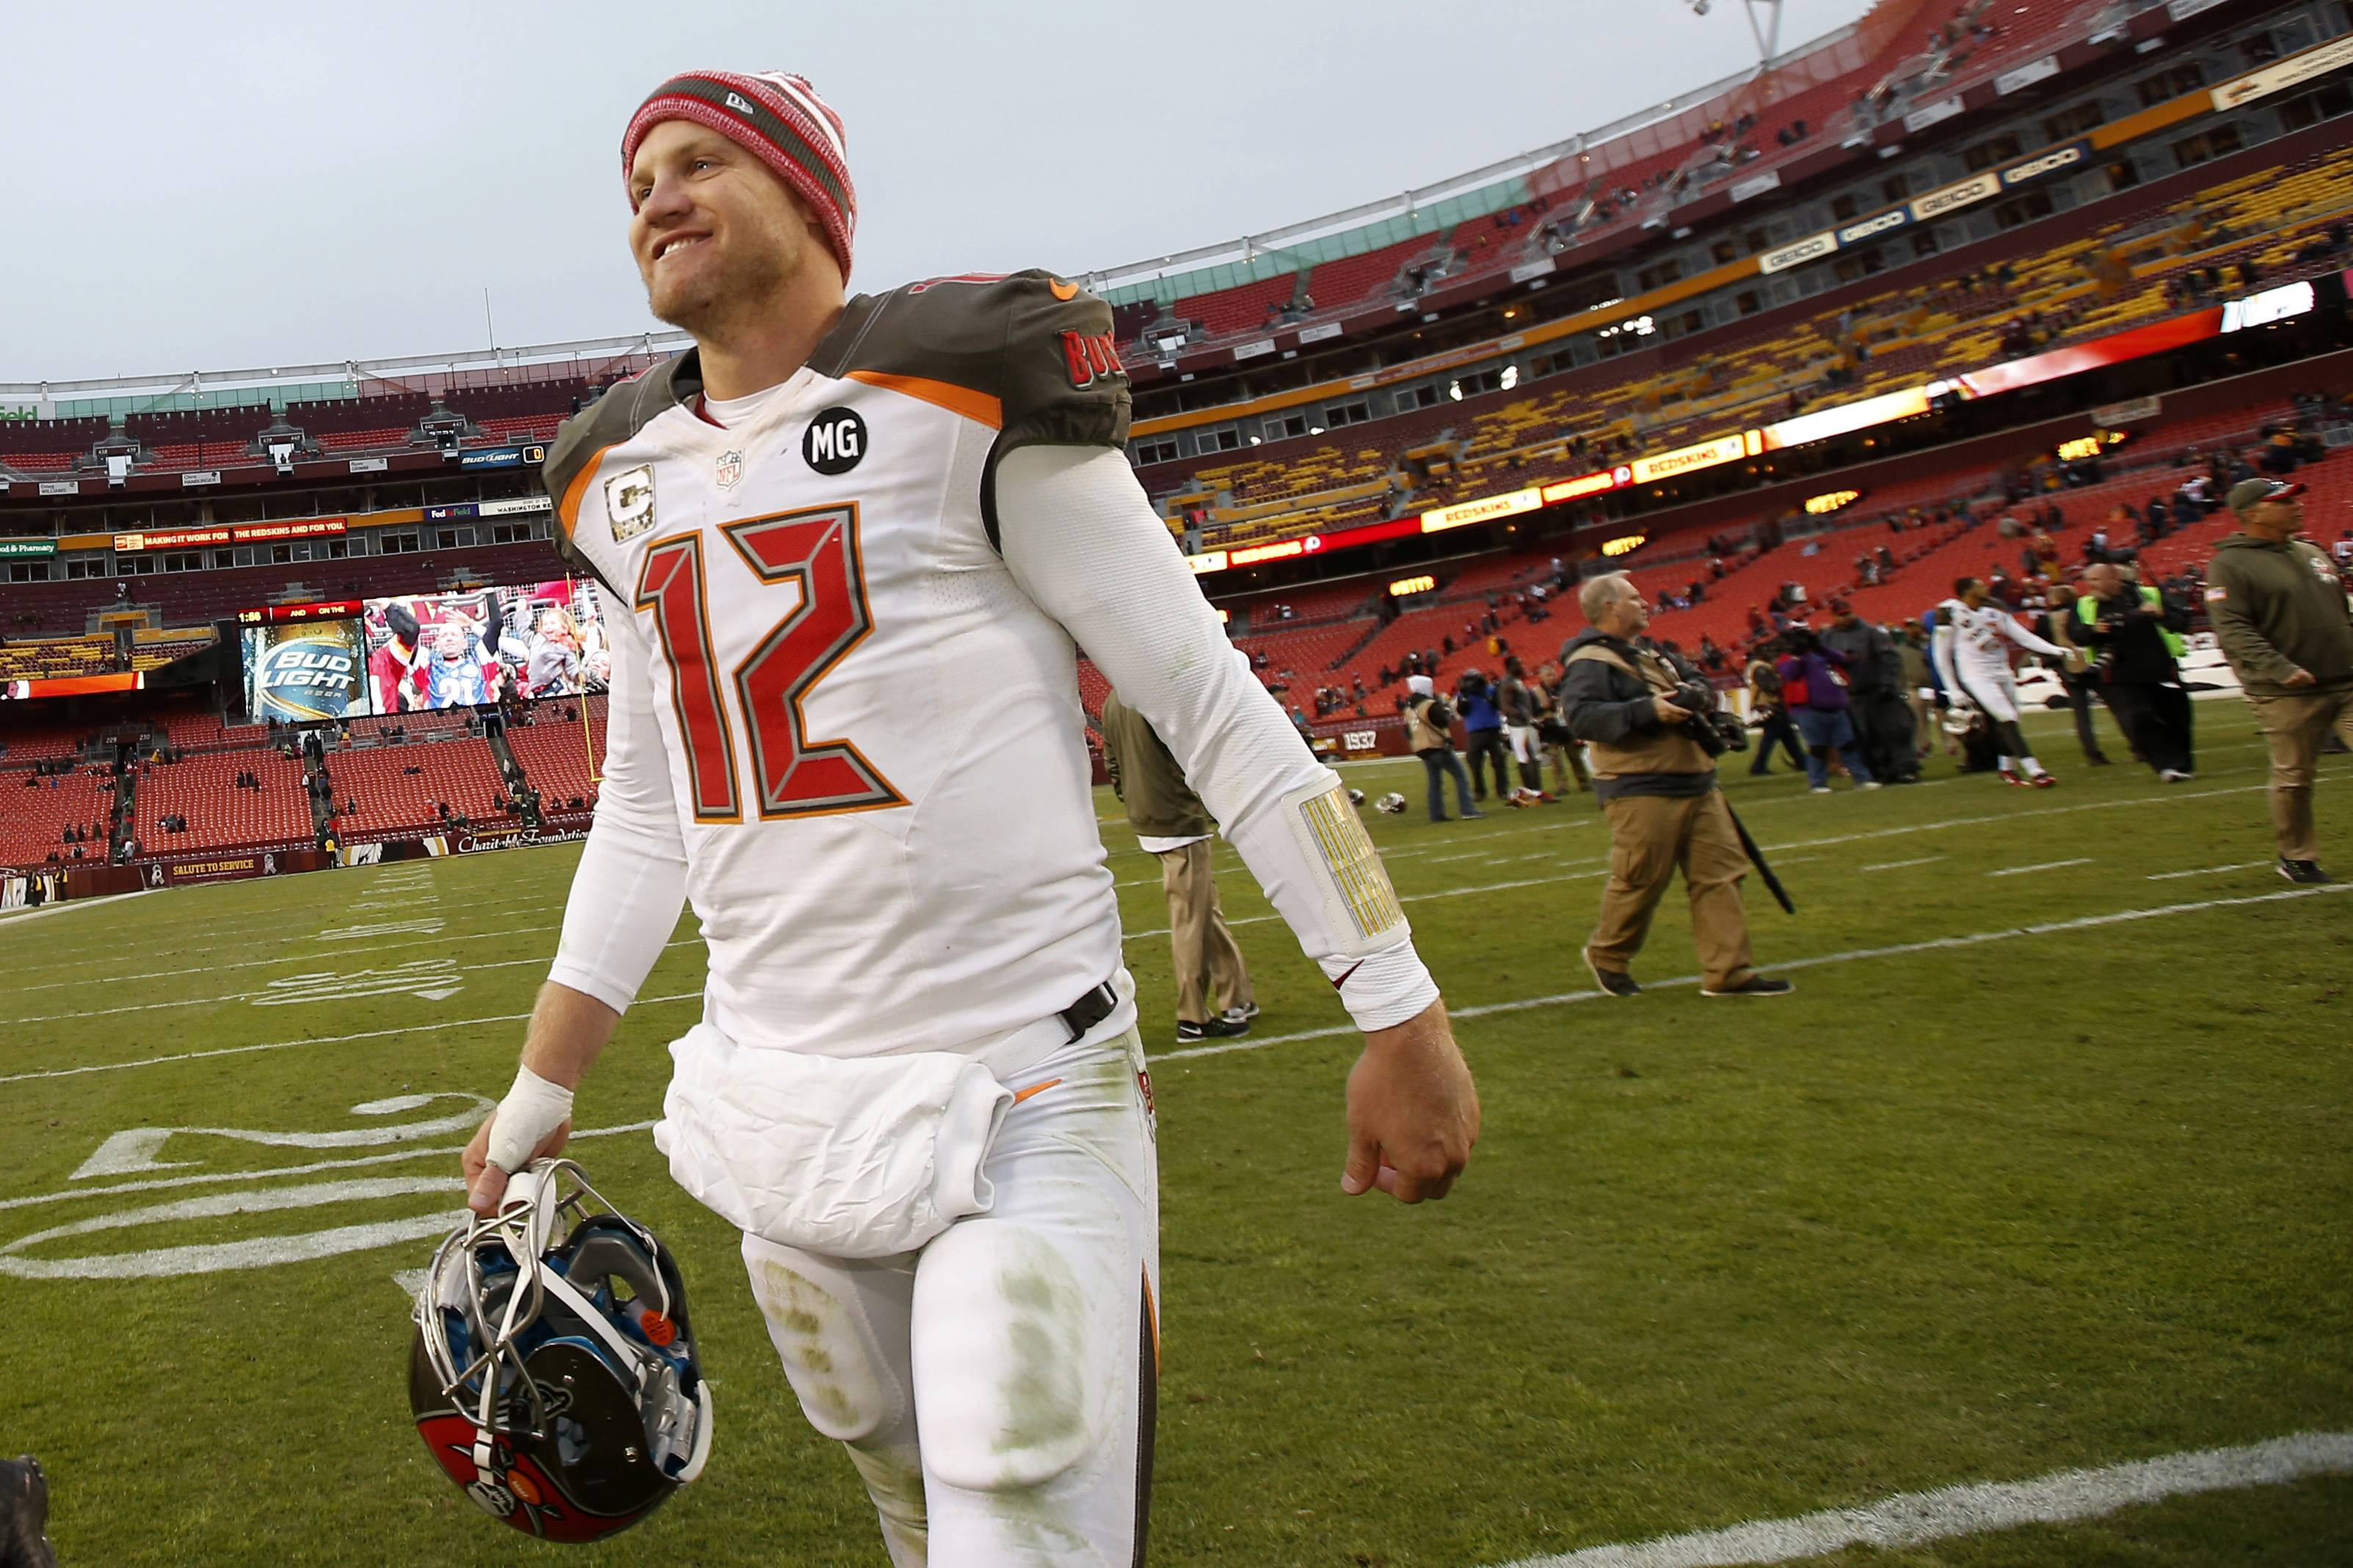 Josh McCown, who threw 13 TD passes and 1 interception last season for the Bears, has only played in five games for Tampa Bay this season, but he did lead the Bucs to a 27-7 win Sunday.